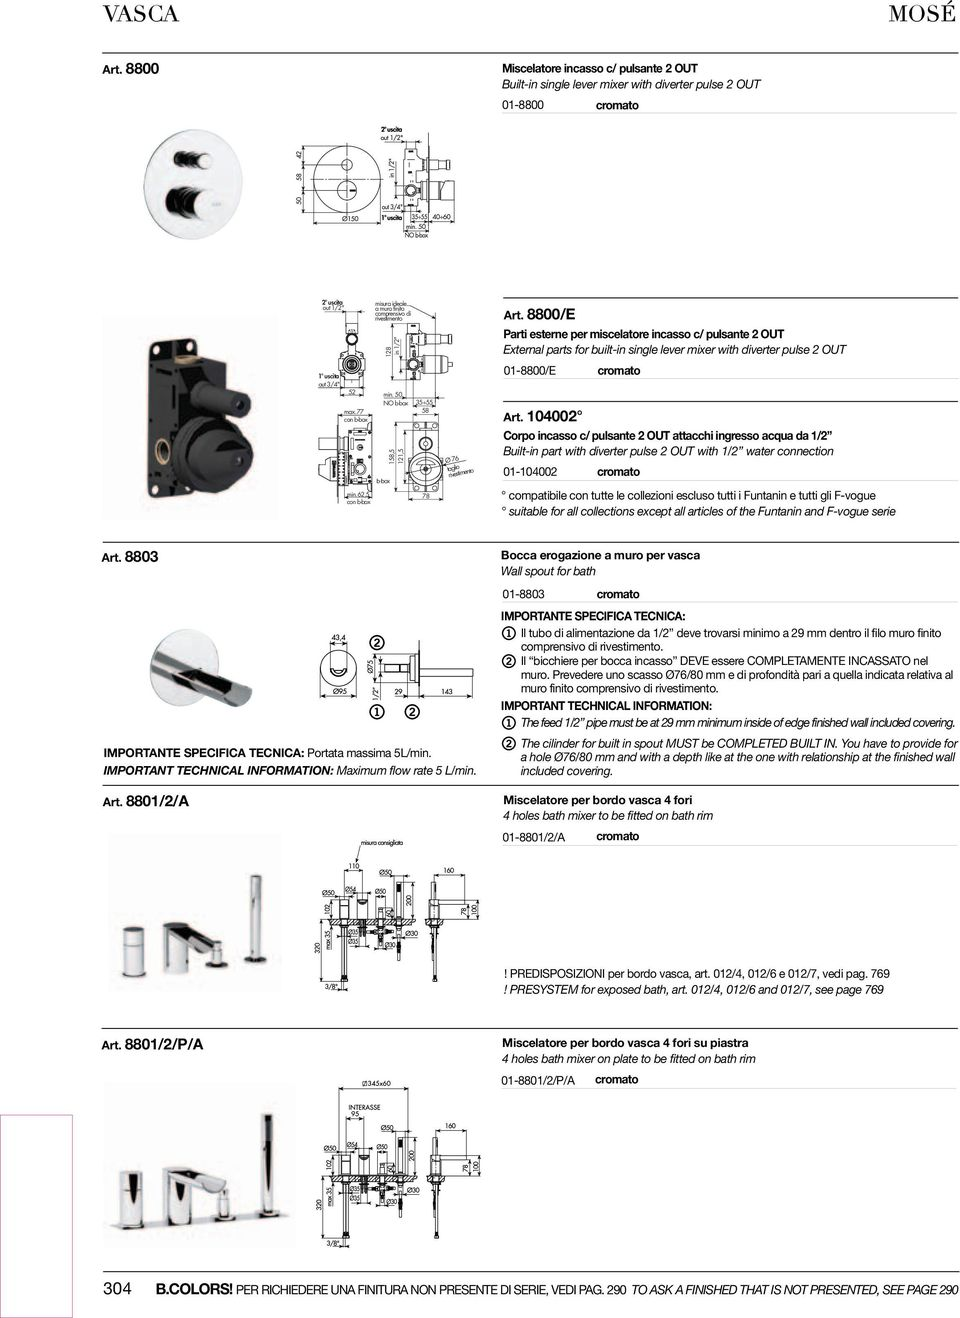 8800/E Parti esterne per miscelatore incasso c/ pulsante 2 OUT External parts for built-in single lever mixer with diverter pulse 2 OUT 01-8800/E Art.